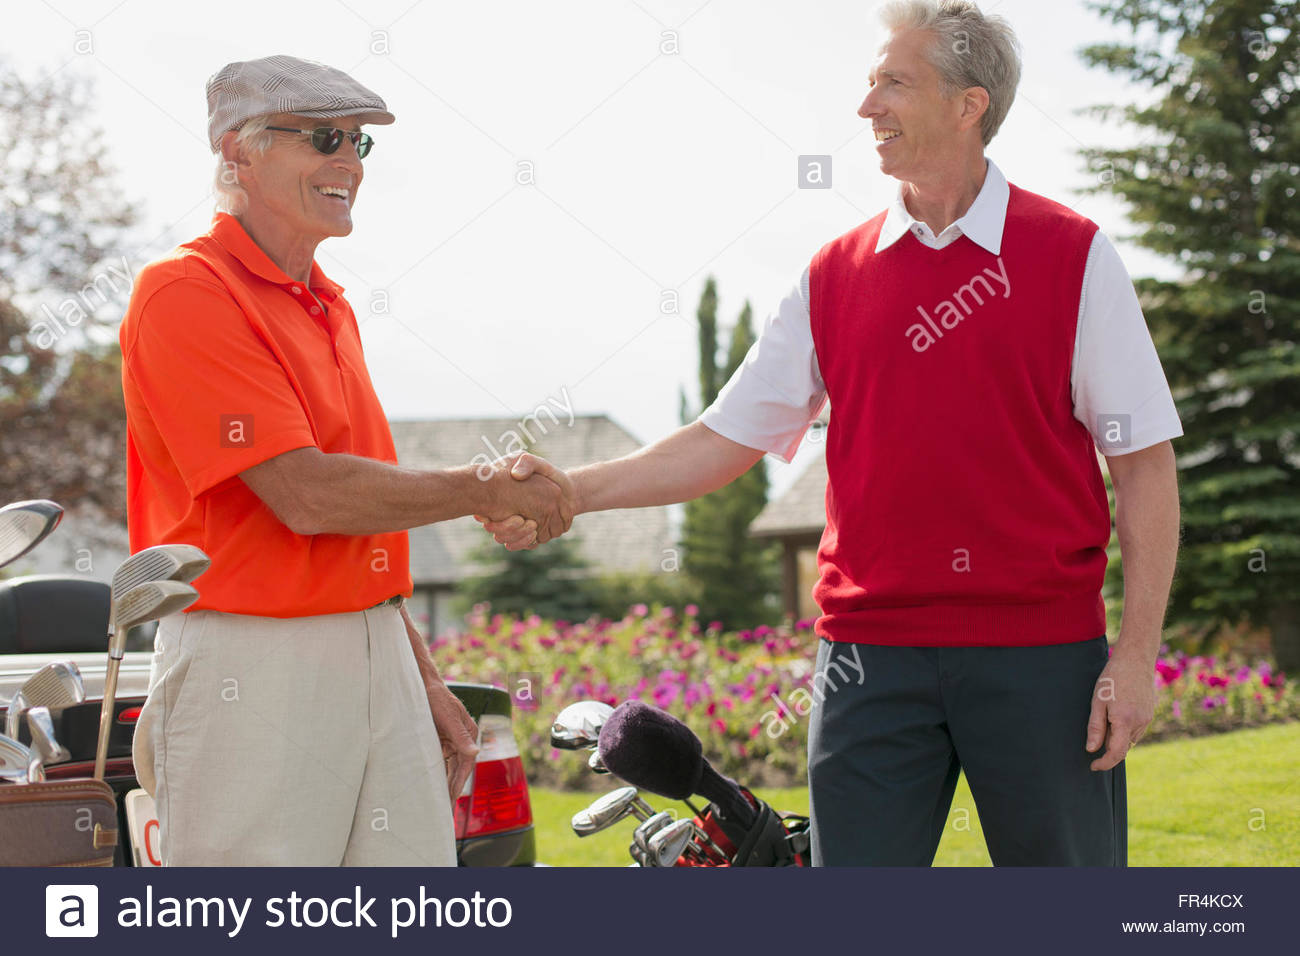 senior man and middle-aged man shaking hands after golf - Stock Image